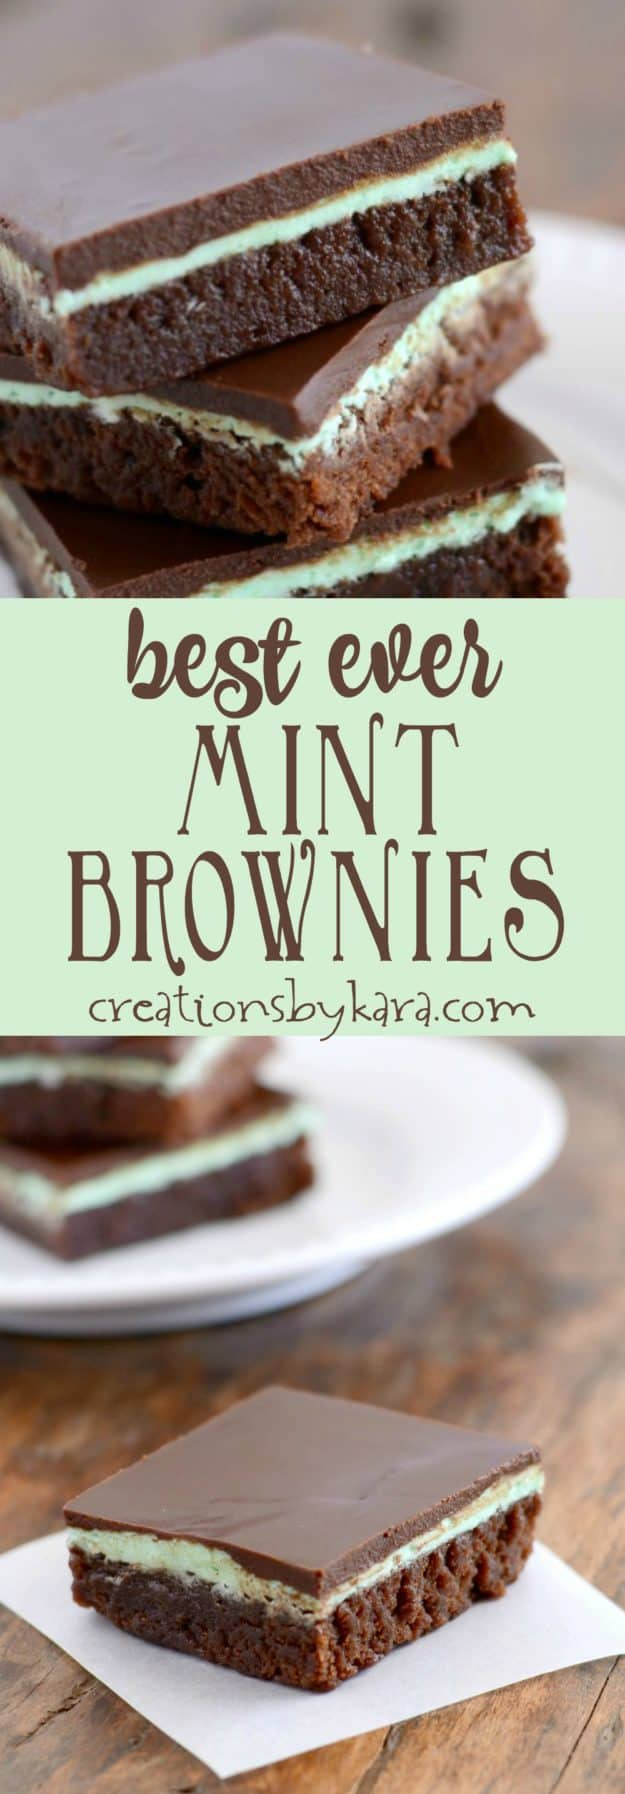 best ever mint brownies recipe collage